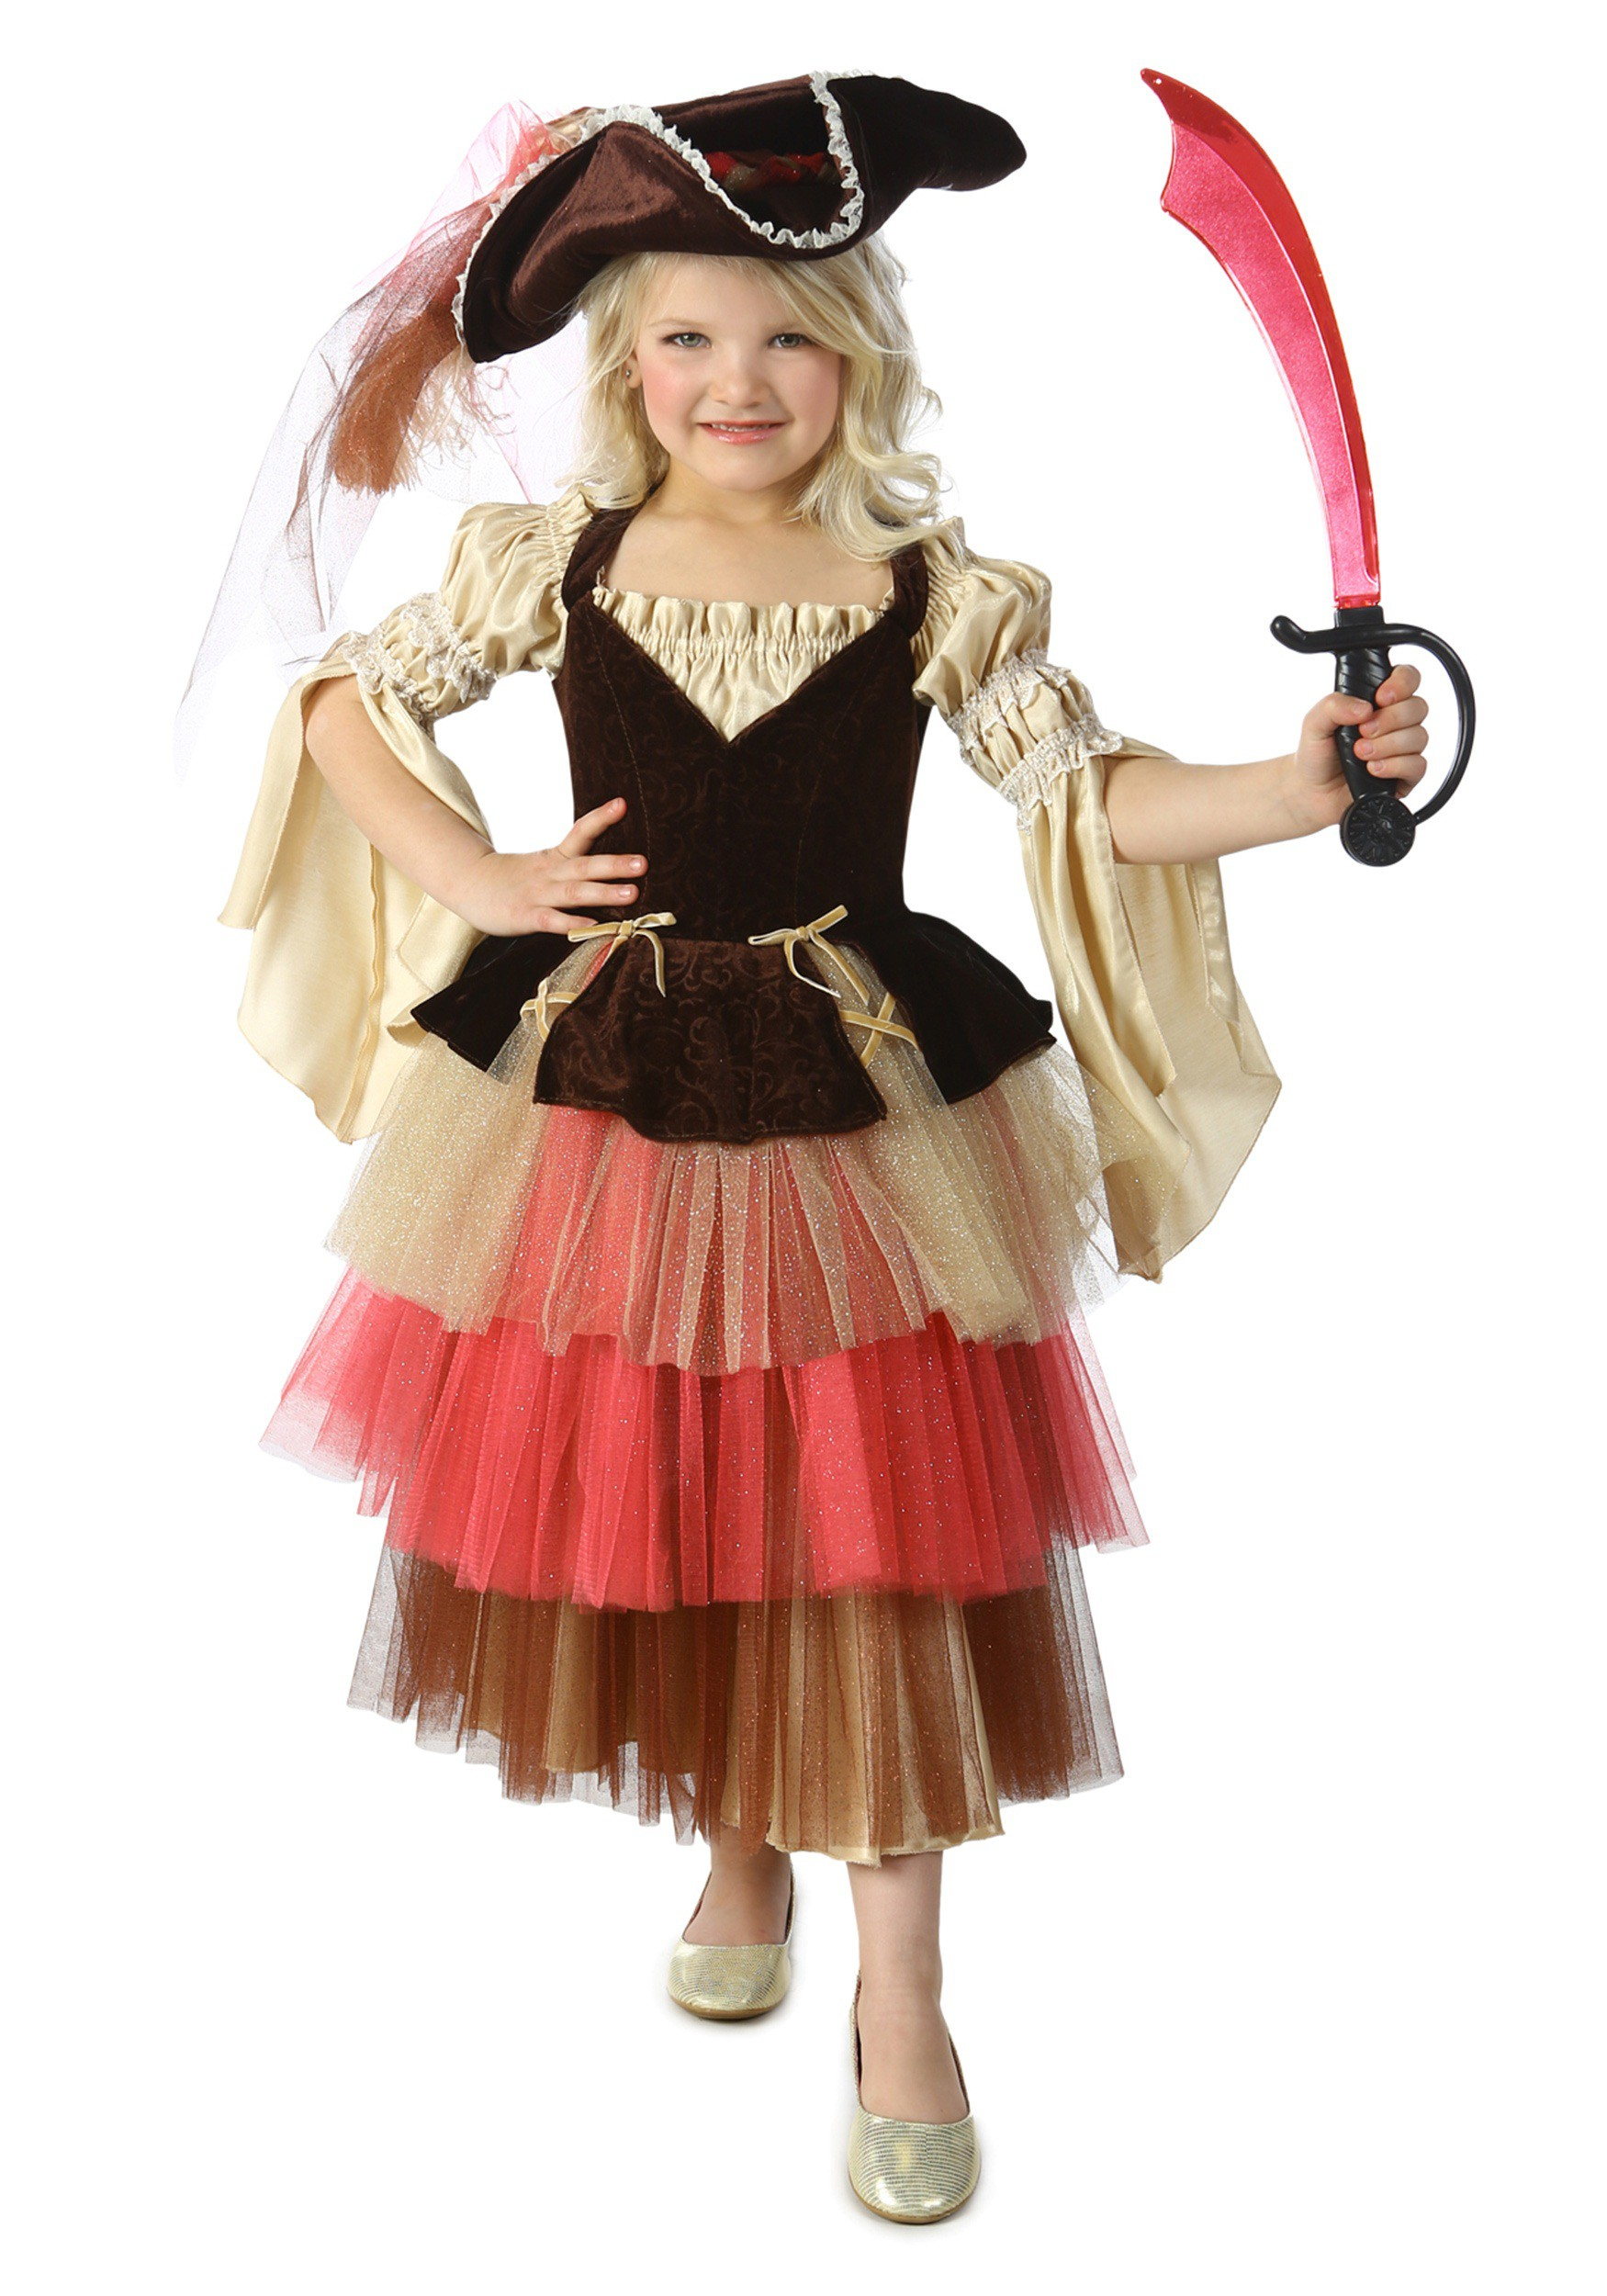 Child's Audrey the Pirate Costume by Princess Paradise